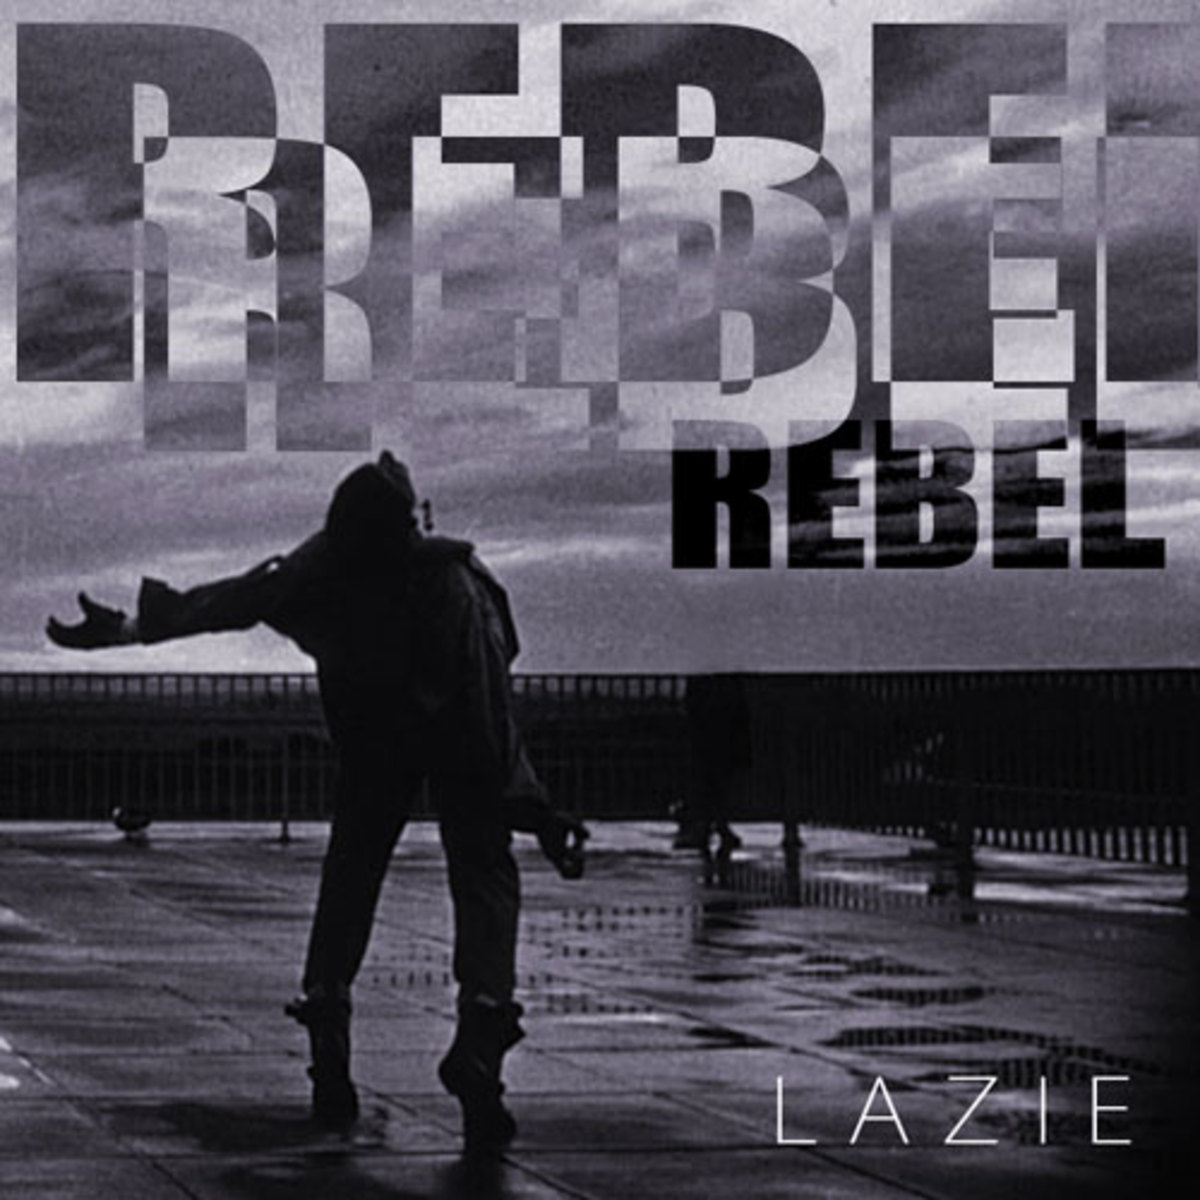 lazie-rebel.jpg